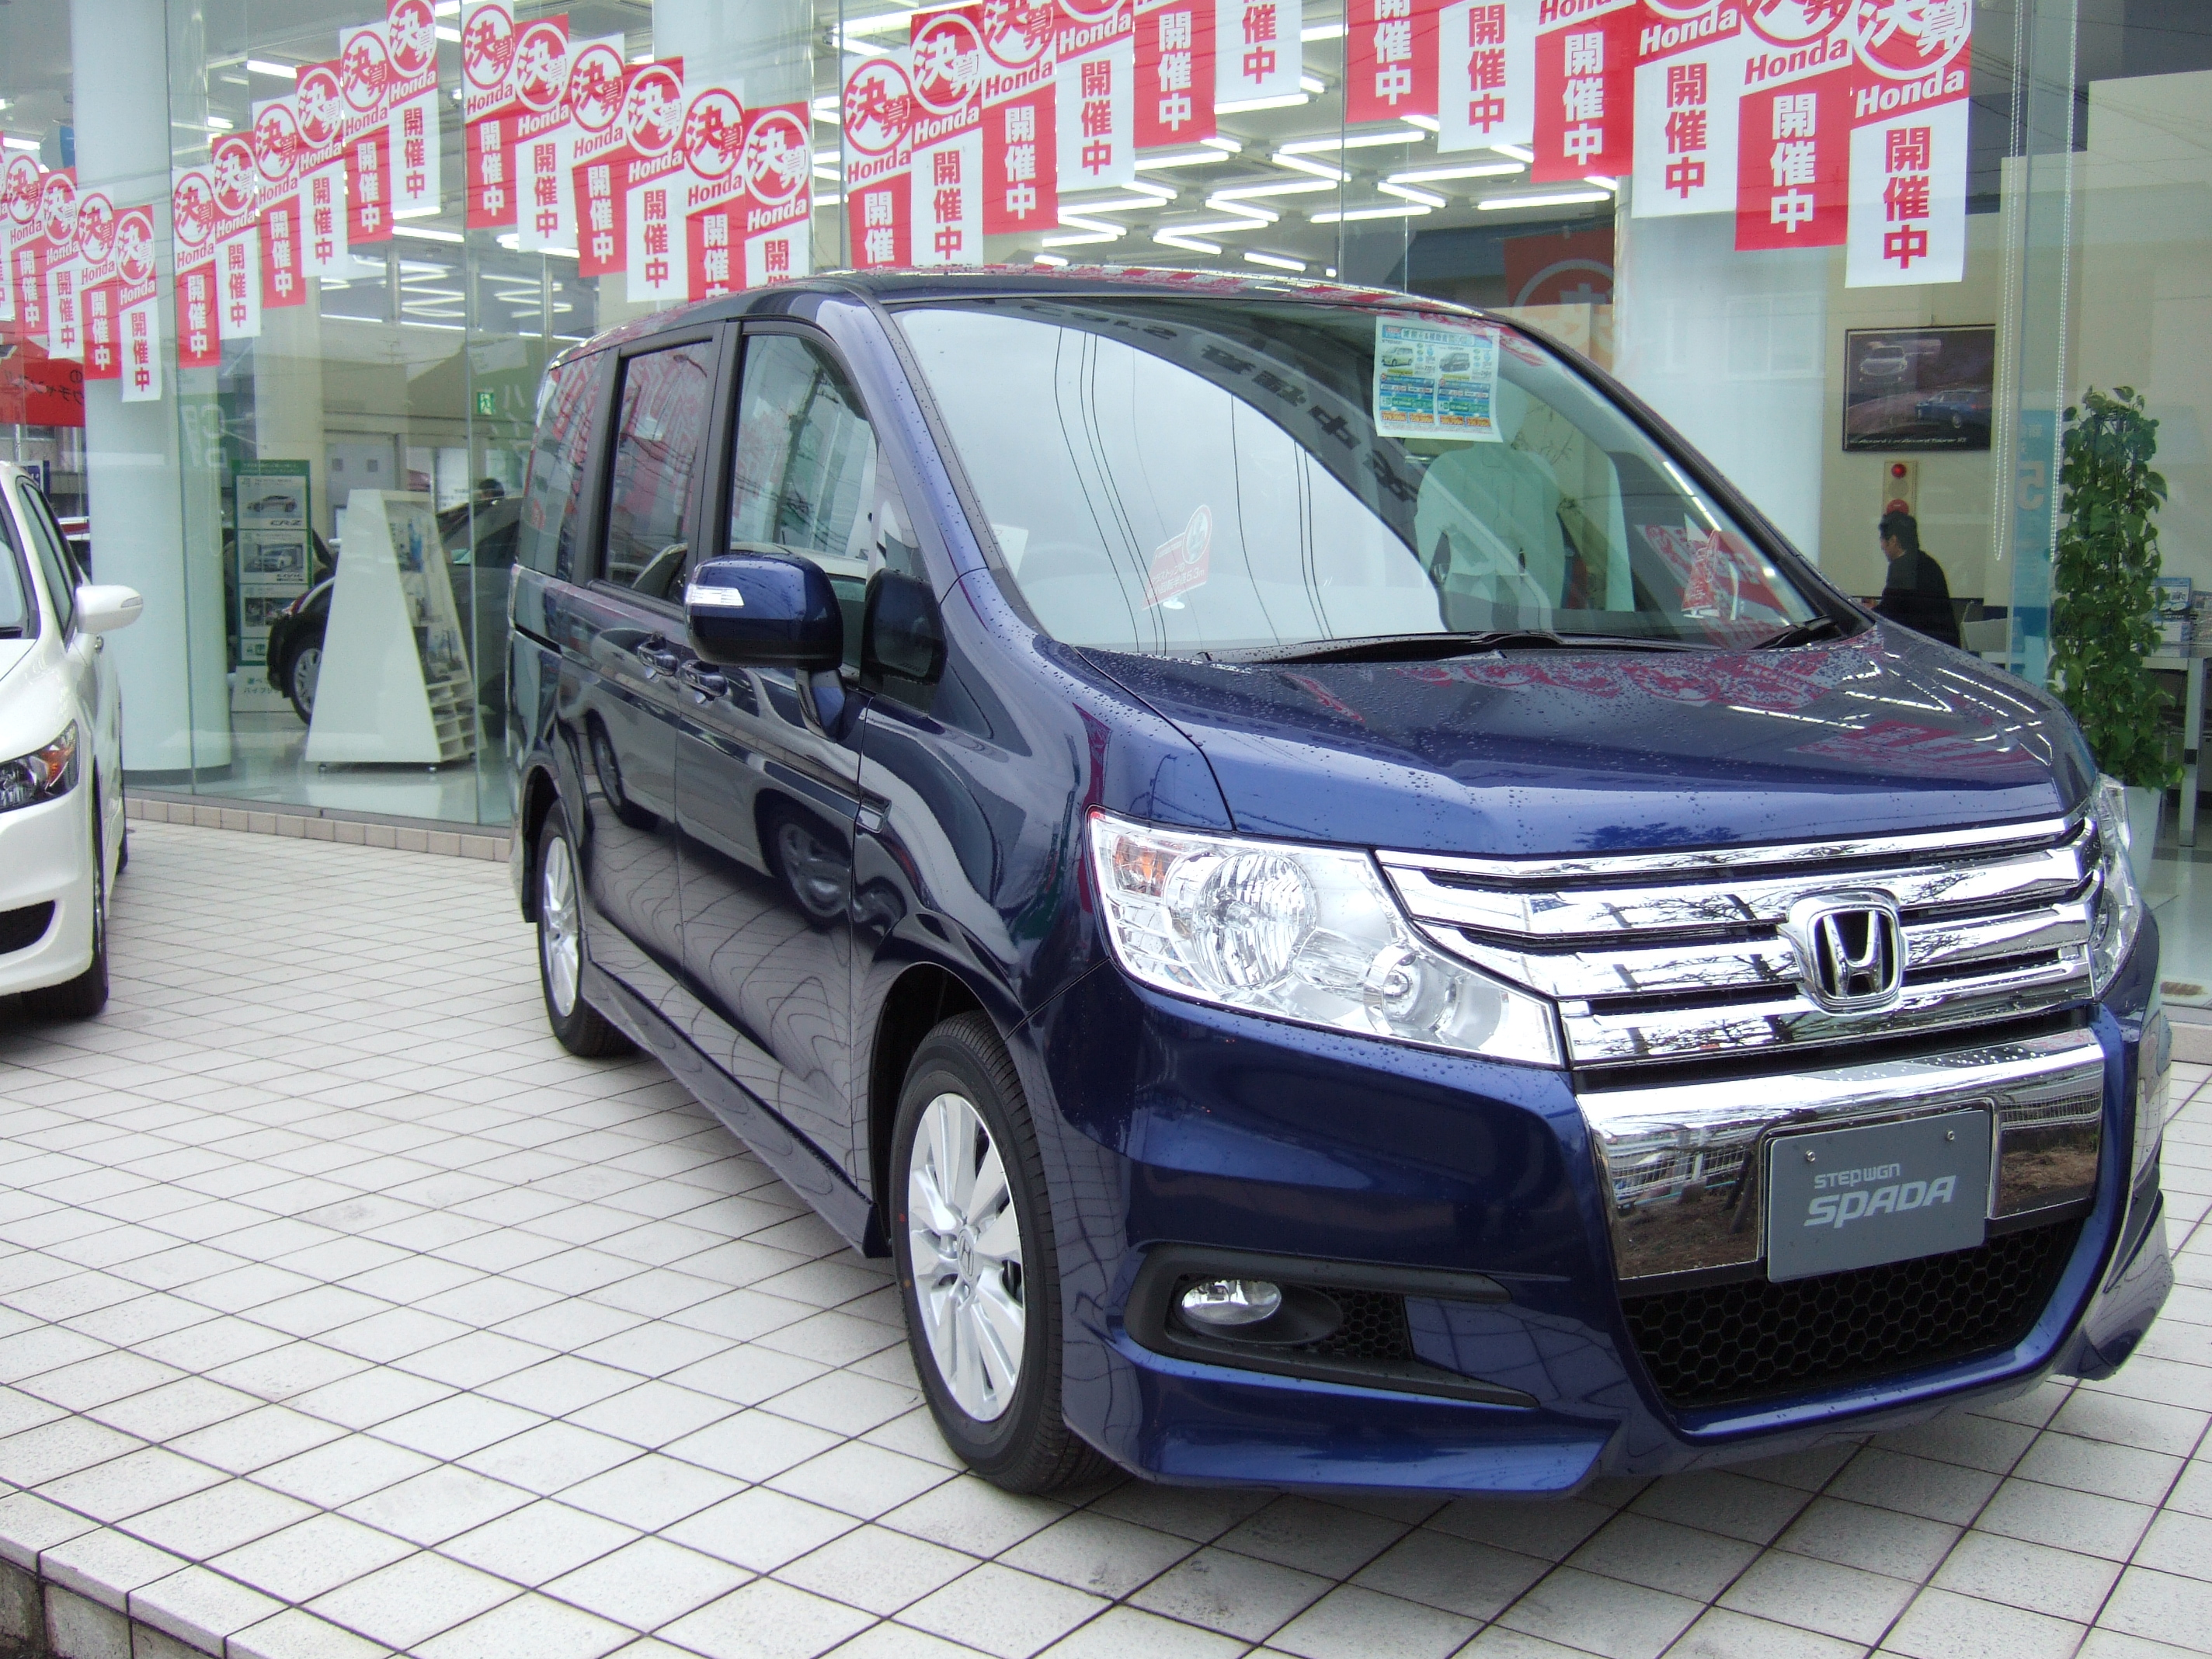 2004 Honda Stepwgn (rf) - pictures, information and specs - Auto-Database.com